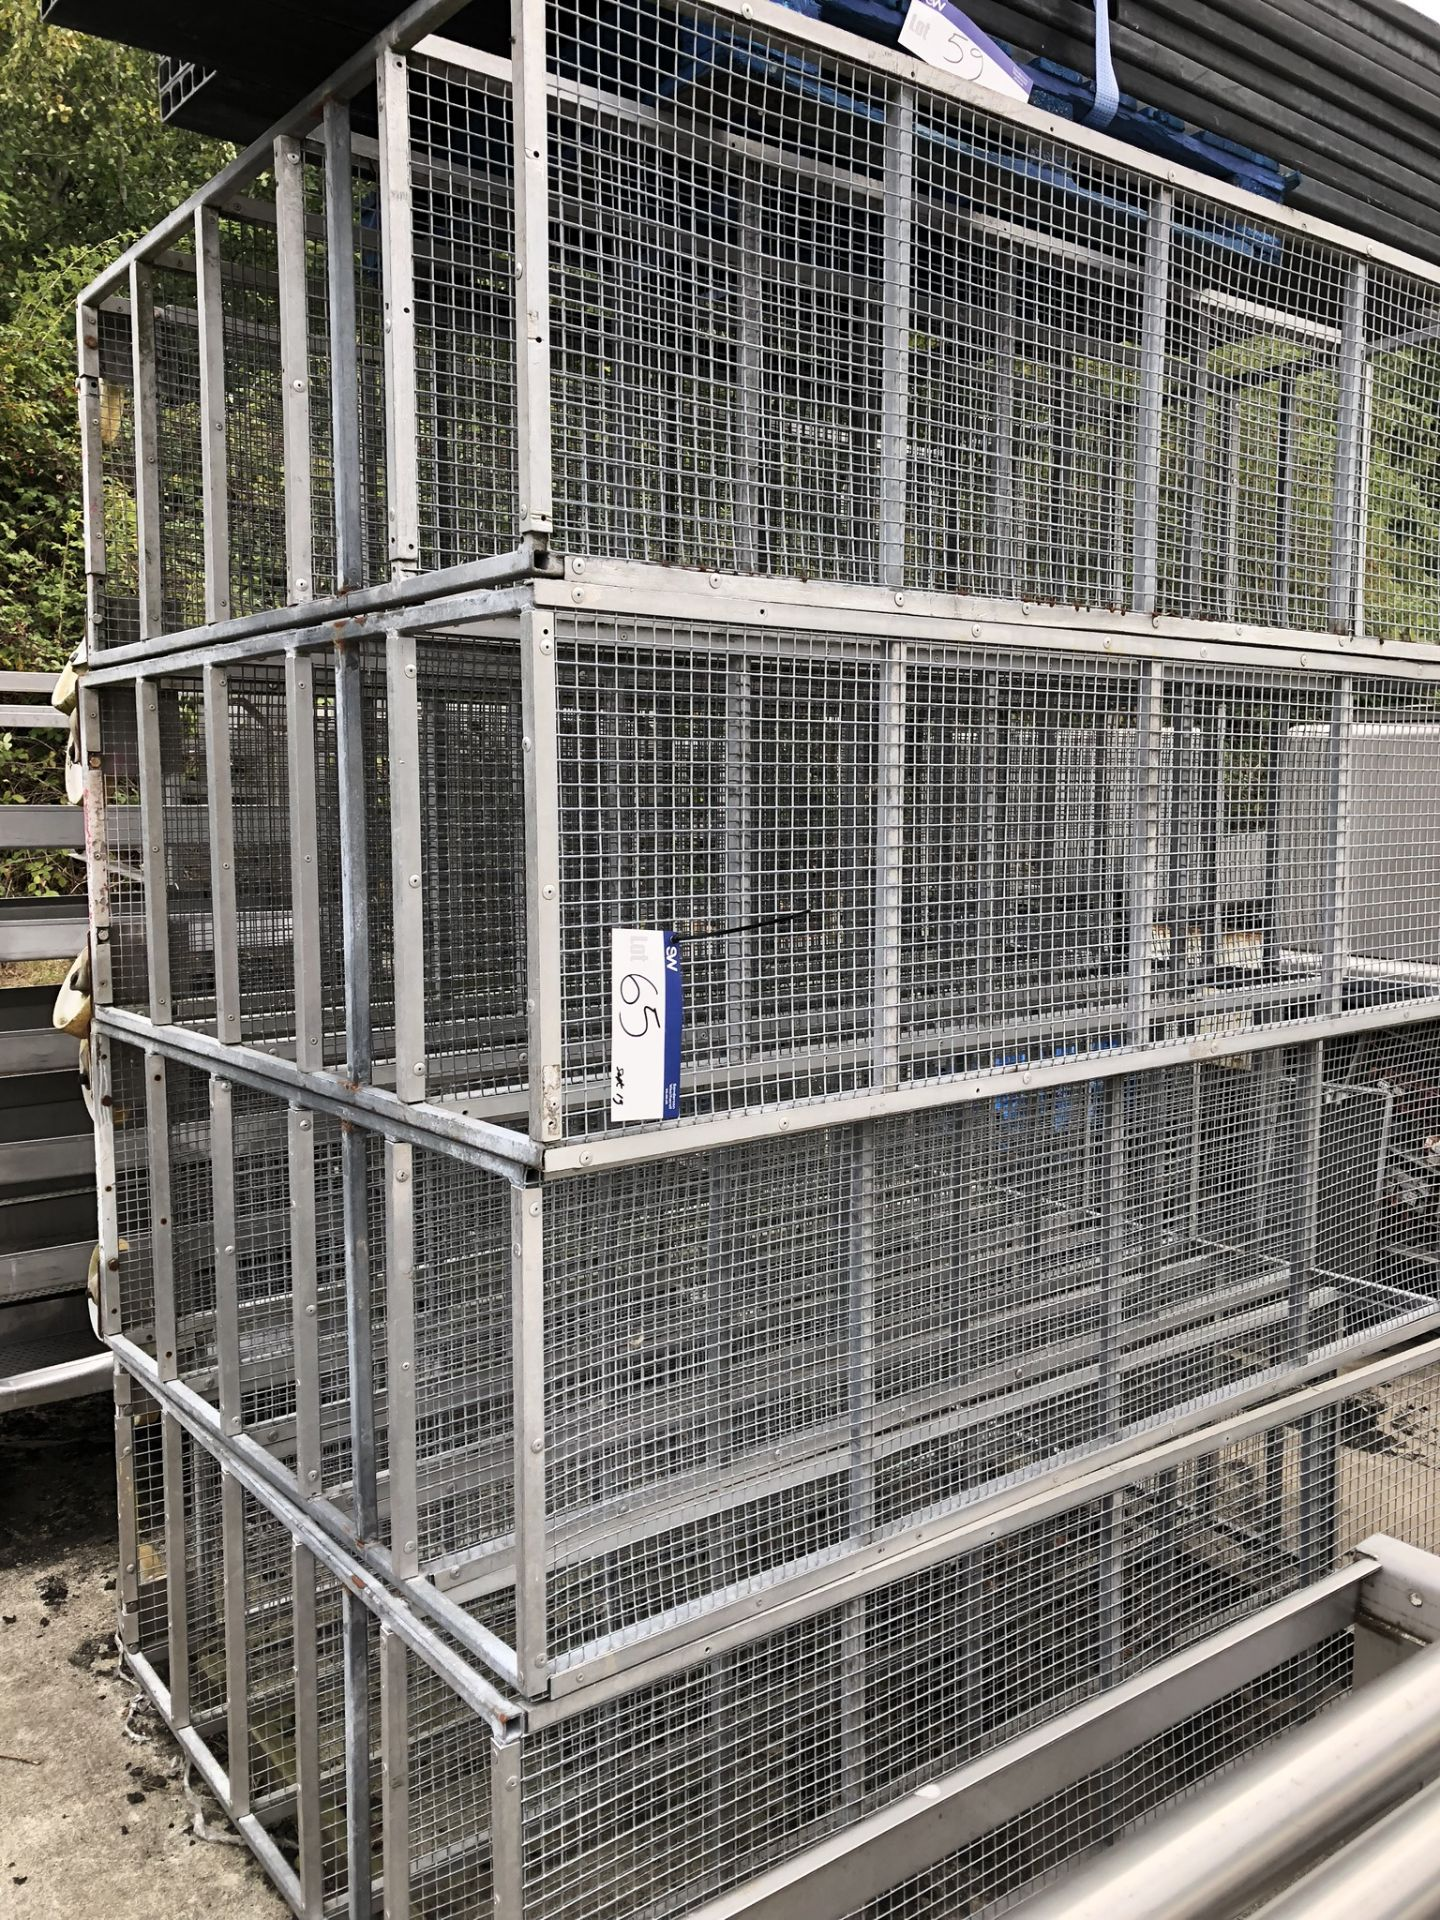 Lotto 65 - Four Mobile Six Tier Racks, approx. 2.1m x 0.6m x 1.5m high, lift out charge - £40